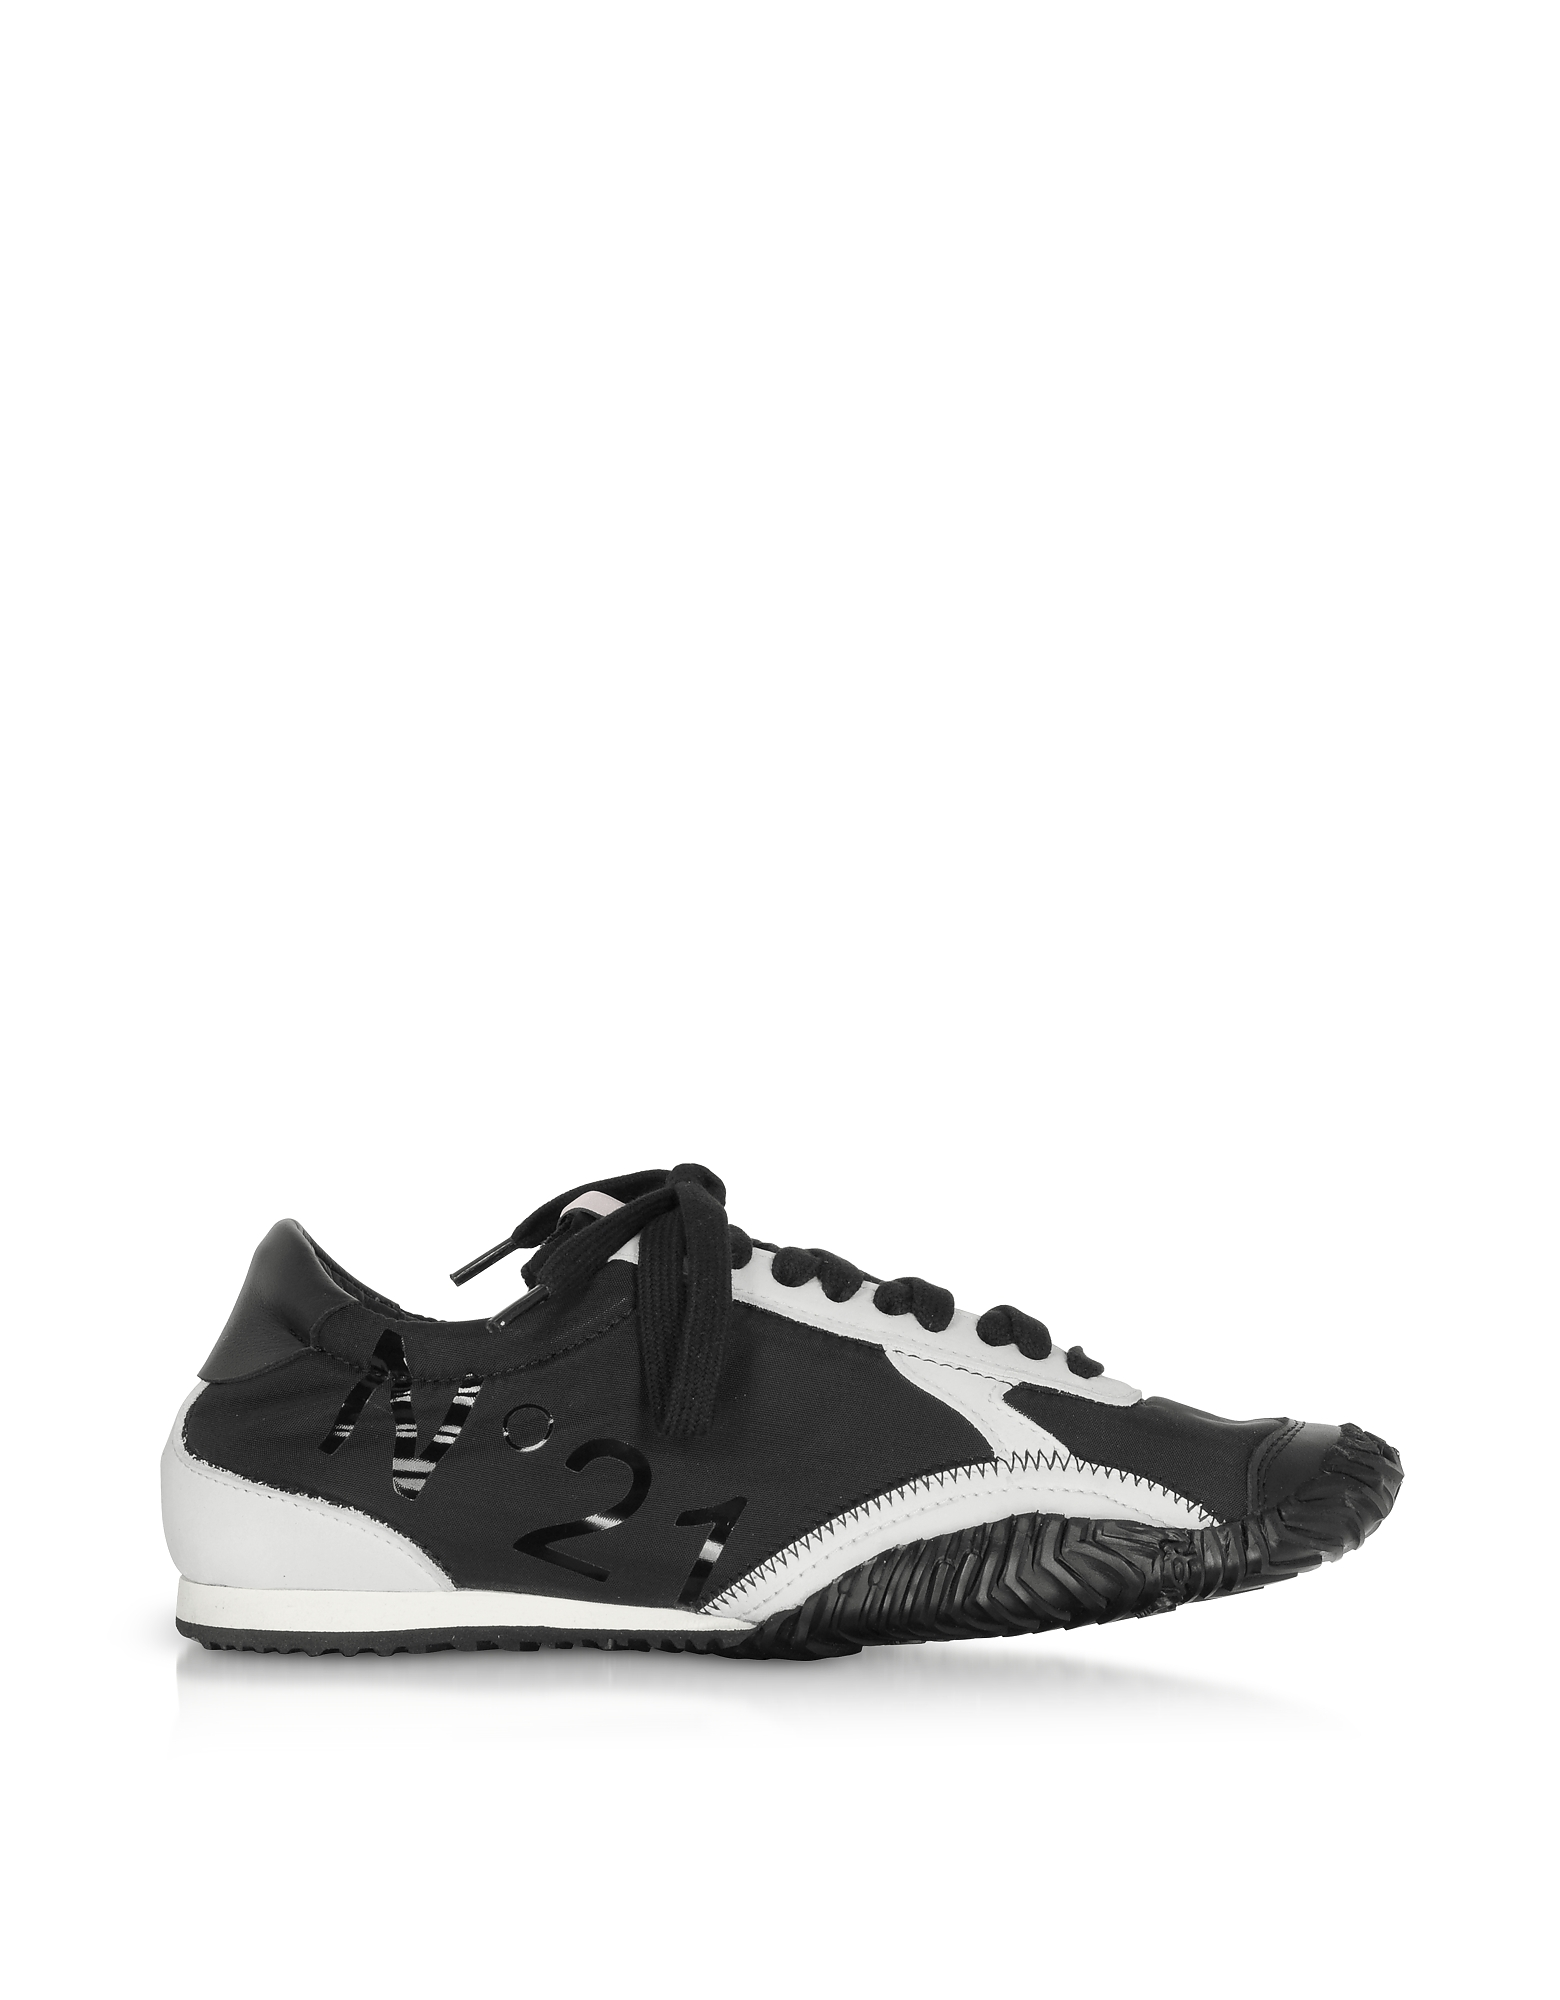 N°21 Designer Shoes, Strike Calf Leather & Synthetic Women's Sneakers